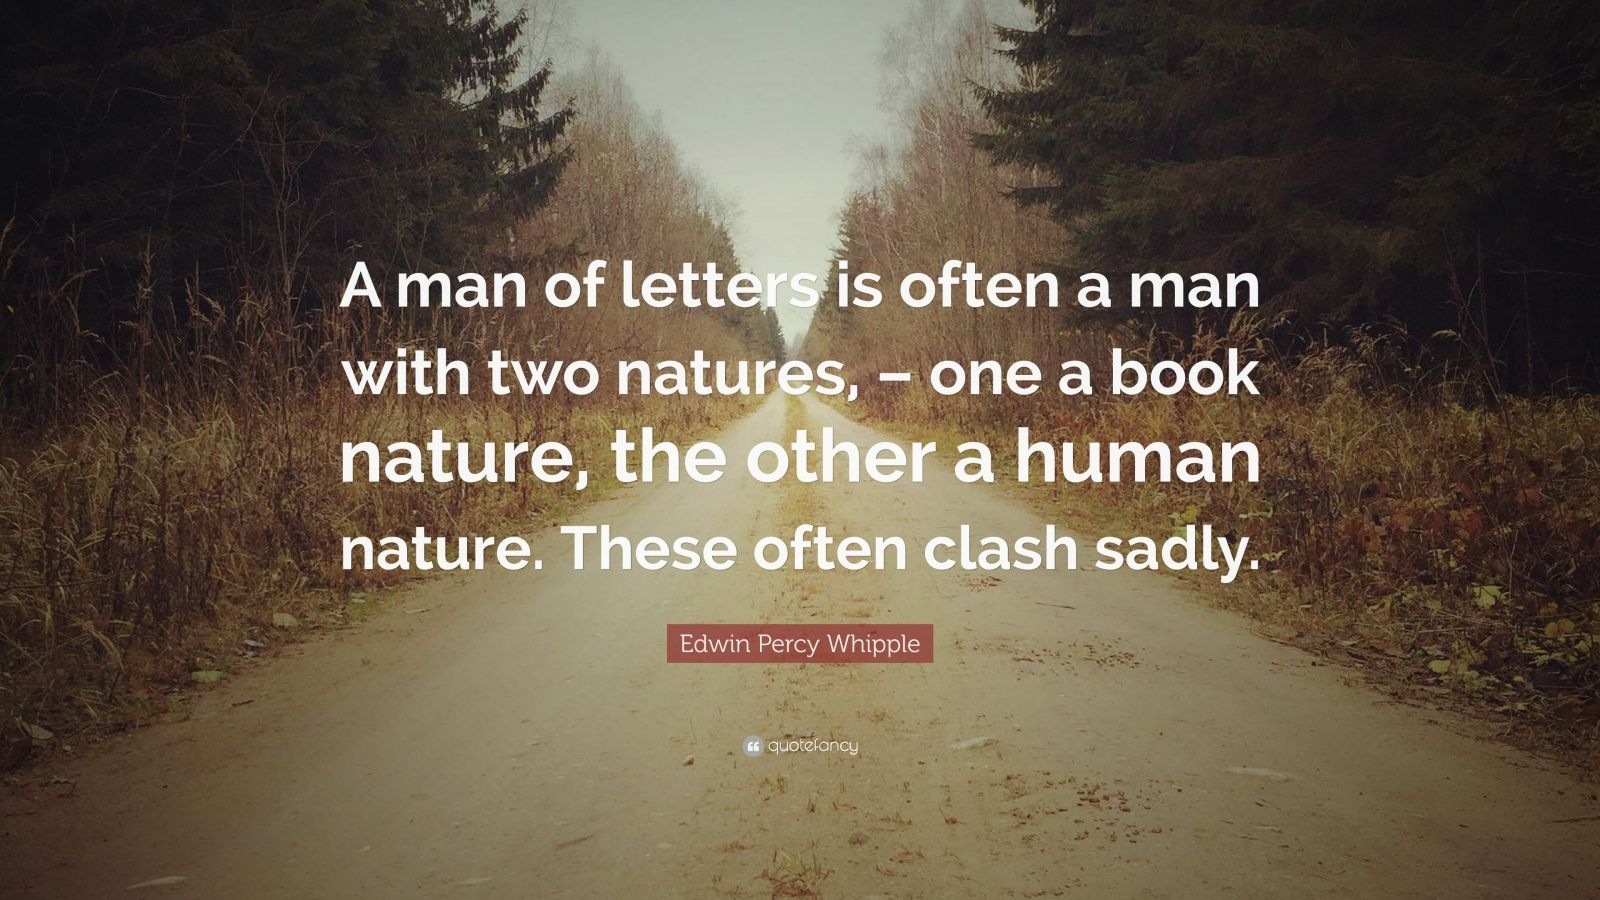 """Edwin Percy Whipple Quote: """"A man of letters is often a man with two natures, – one a book nature, the other a human nature. These often clash sadly."""""""